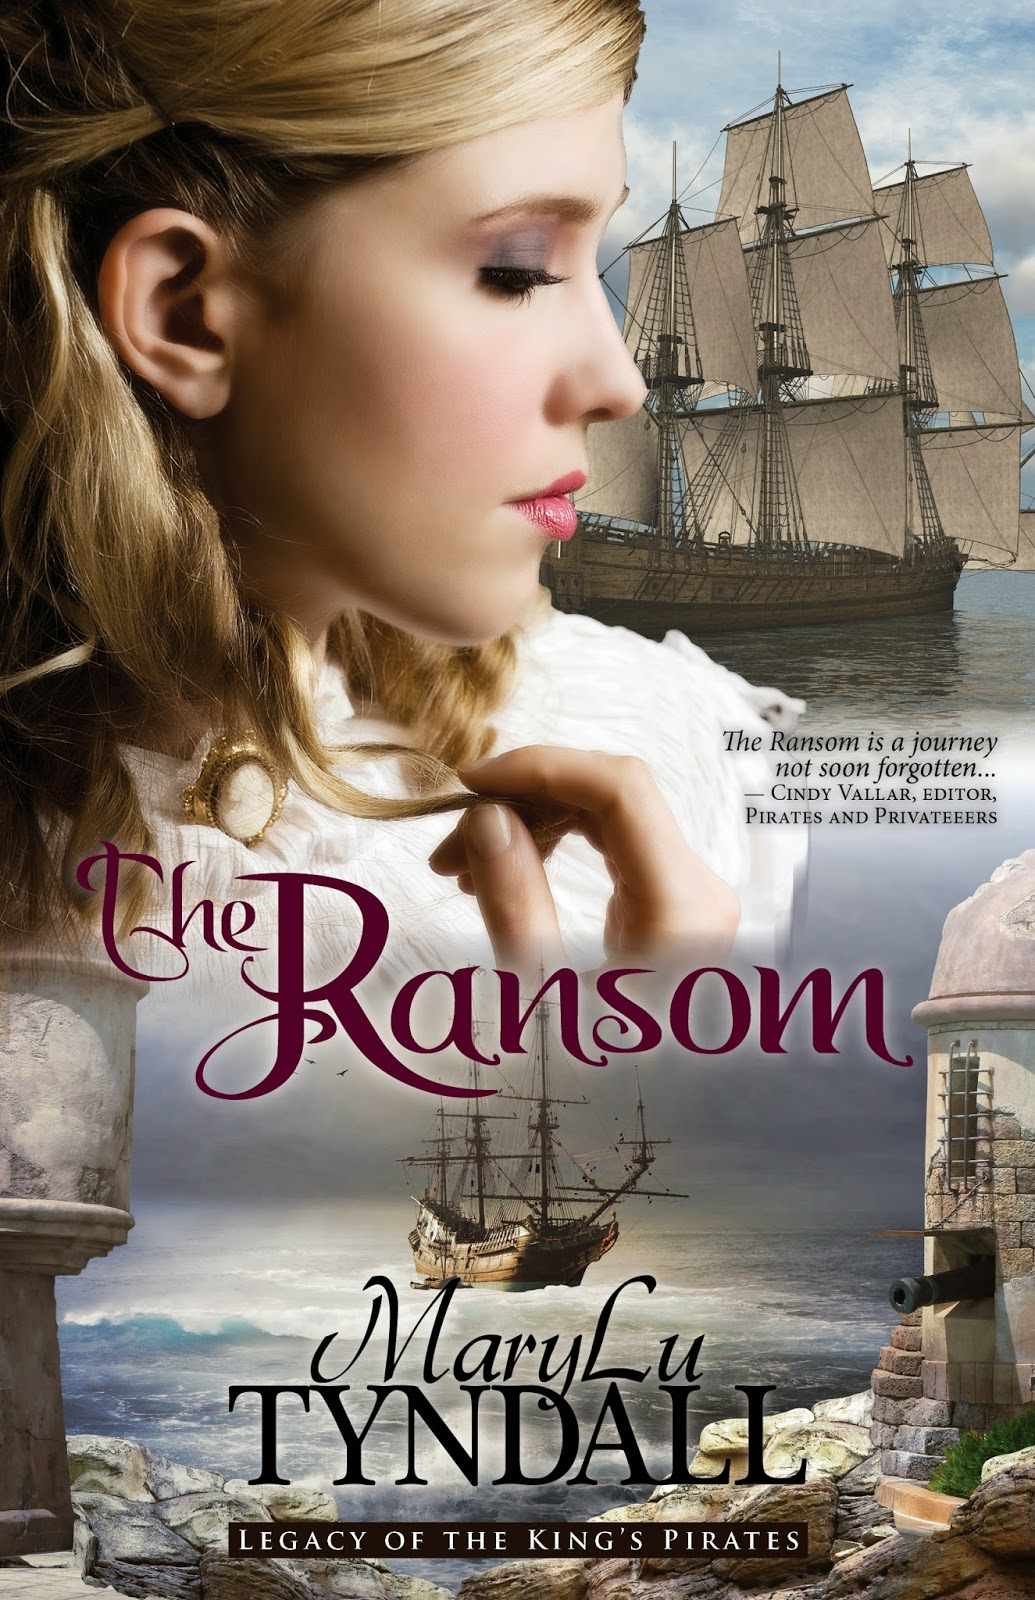 http://www.amazon.com/The-Ransom-Legacy-Kings-Pirates/dp/0991092120/ref=sr_1_3?ie=UTF8&qid=1399065223&sr=8-3&keywords=marylu+tyndall